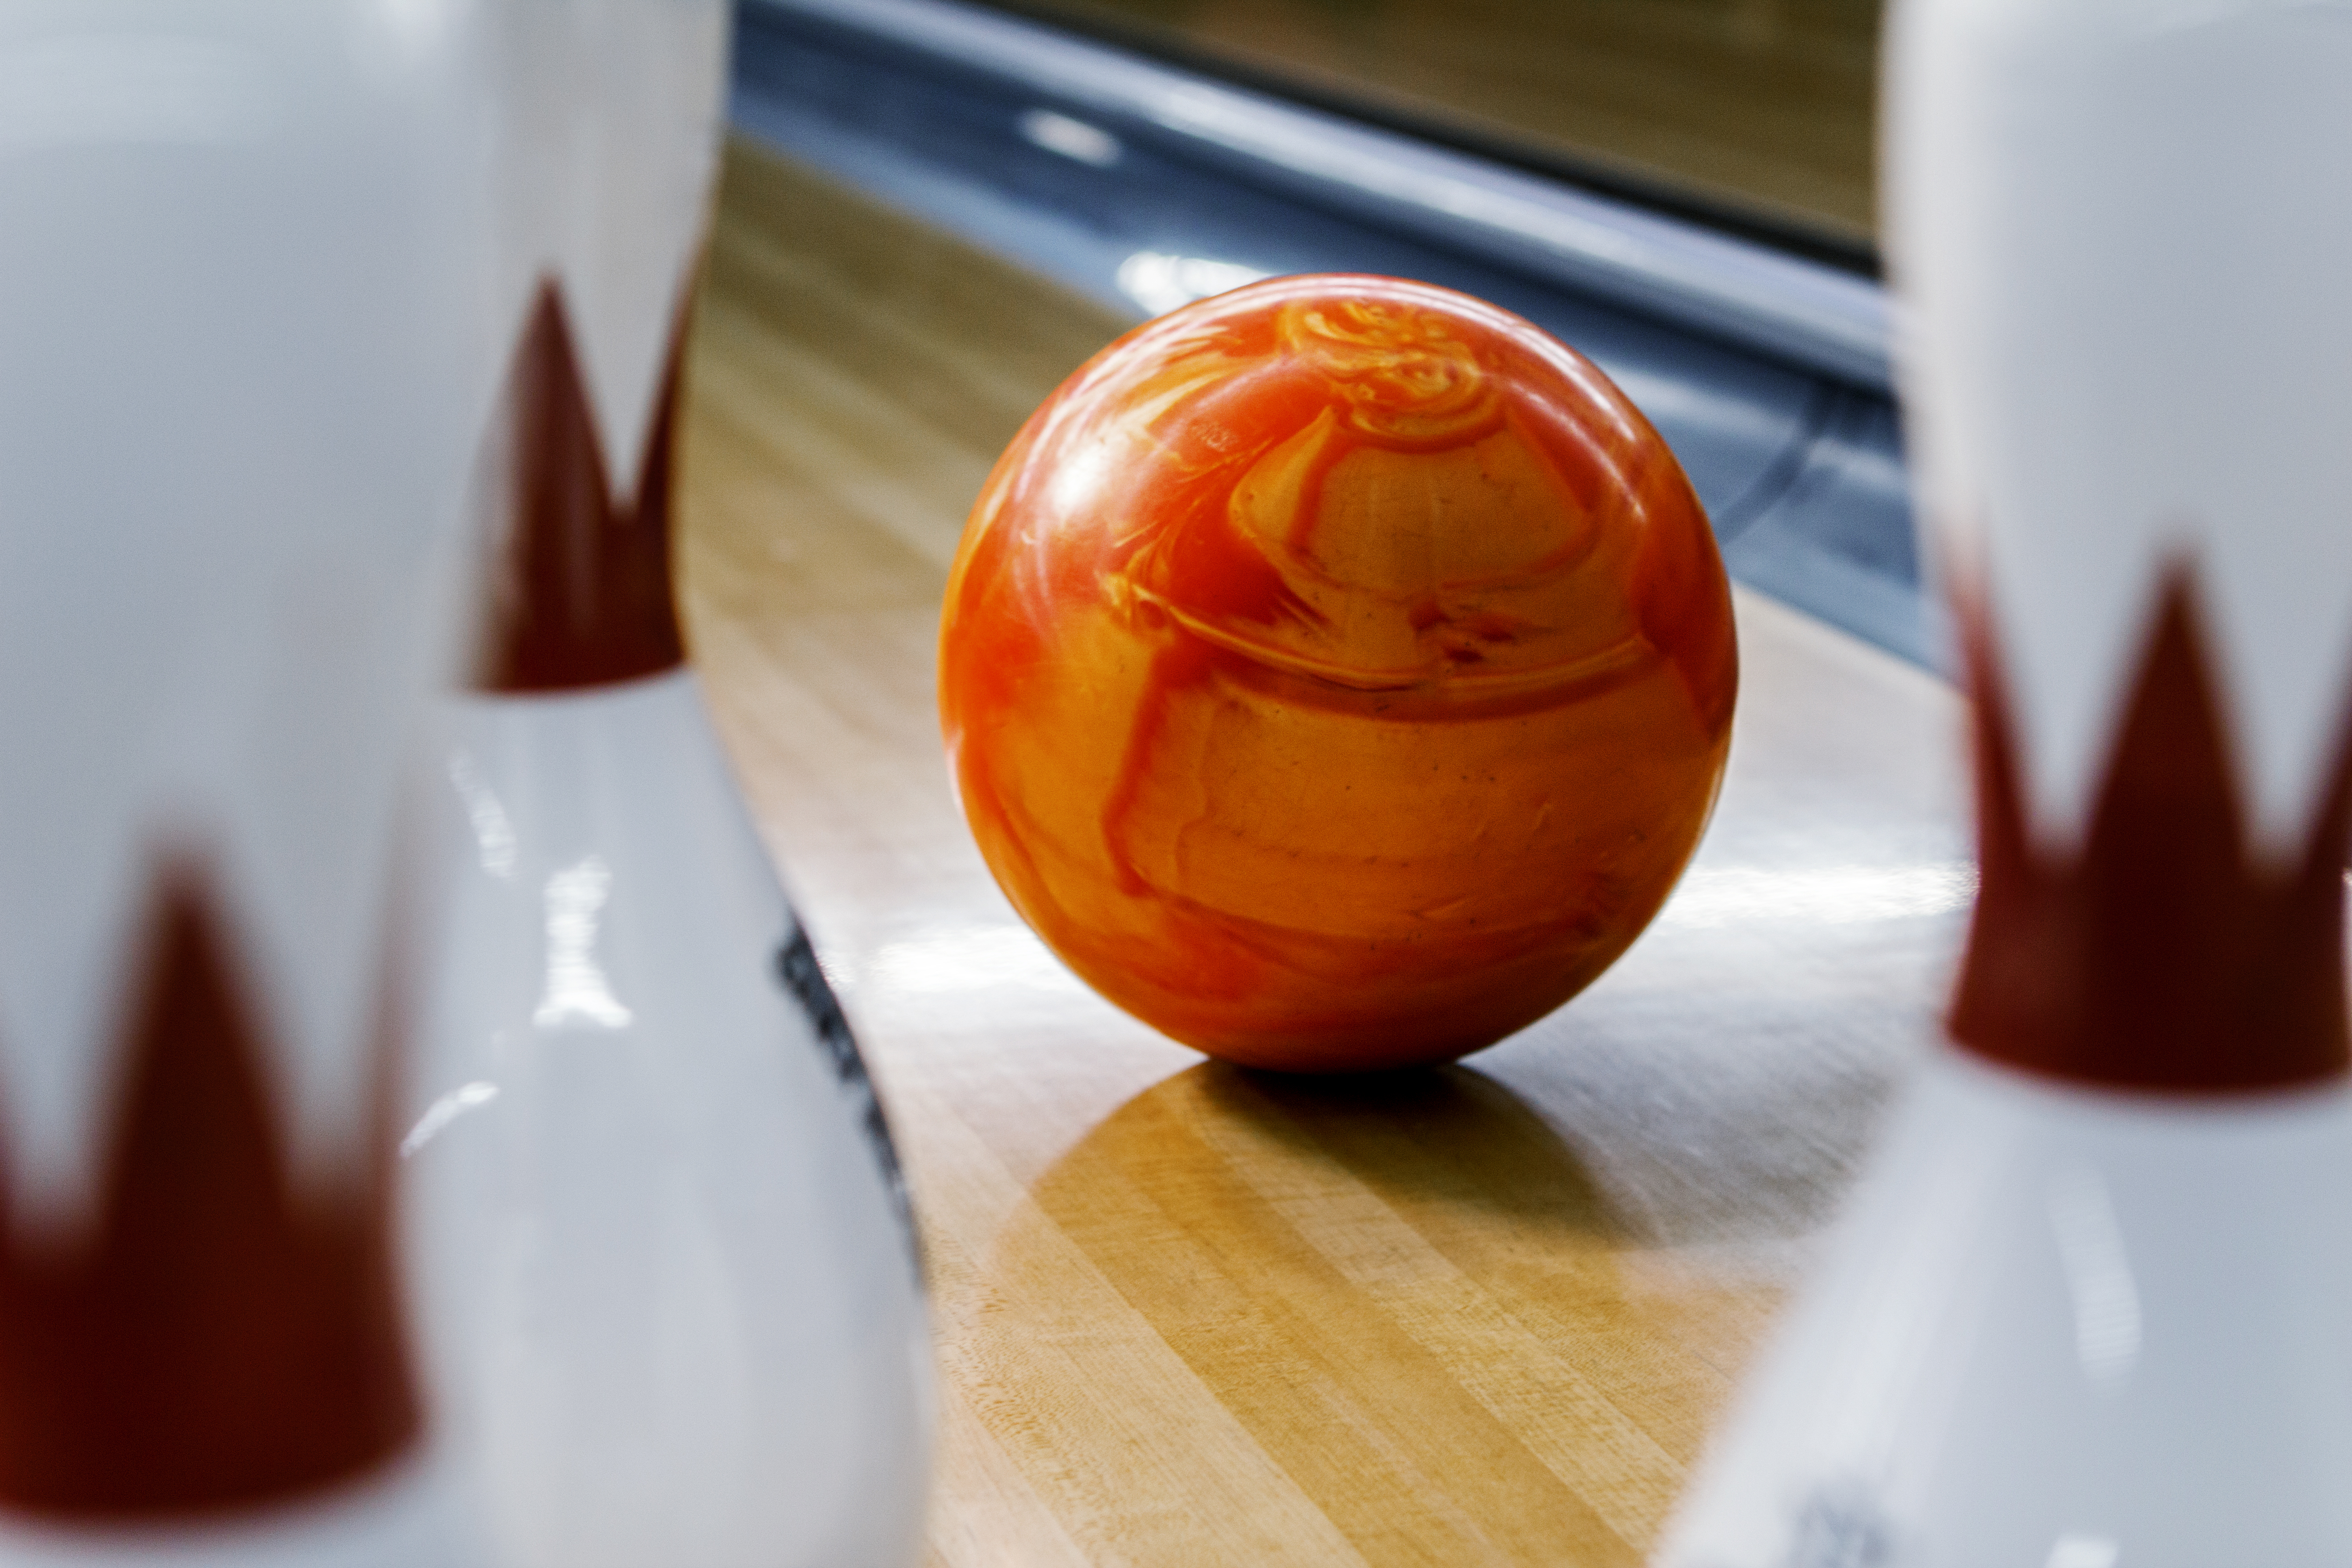 Bowling ball heading towards pins